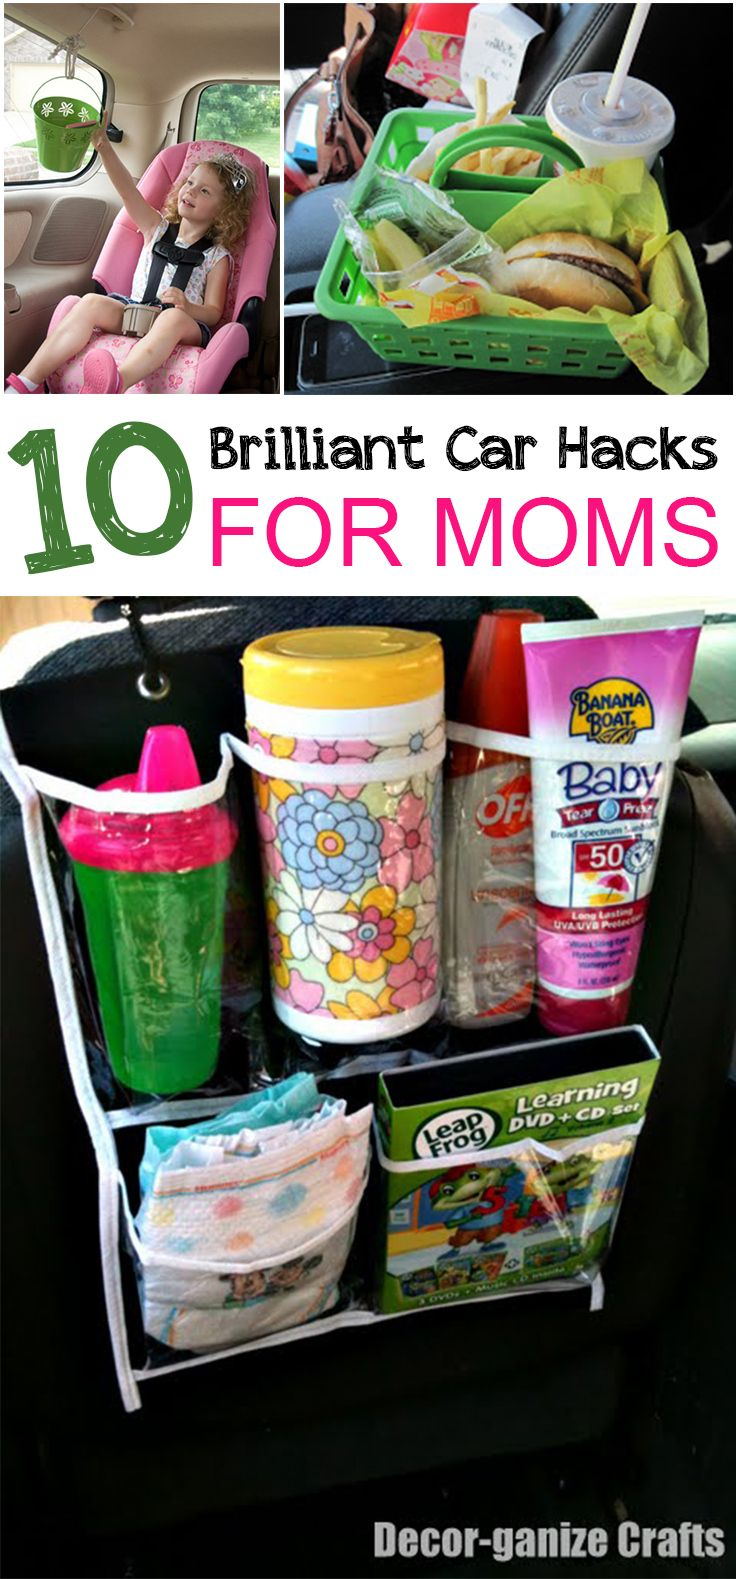 10 Brilliant Car Hacks for Moms- Great ideas to make the car ride easier for moms:)